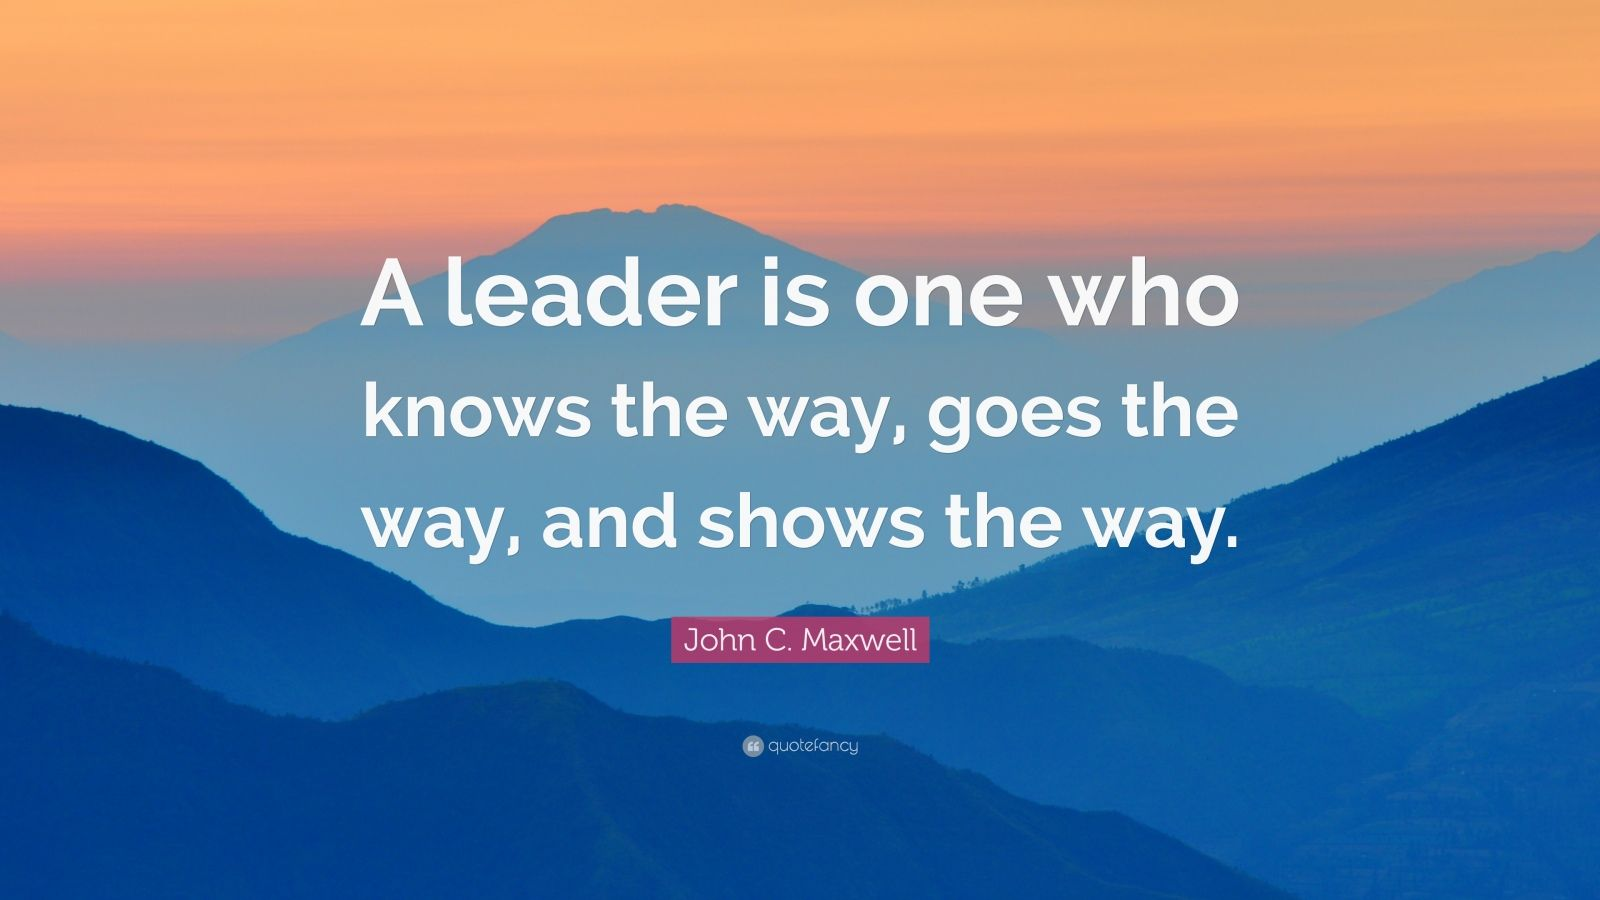 Business Success Quotes Wallpaper John C Maxwell Quote A Leader Is One Who Knows The Way